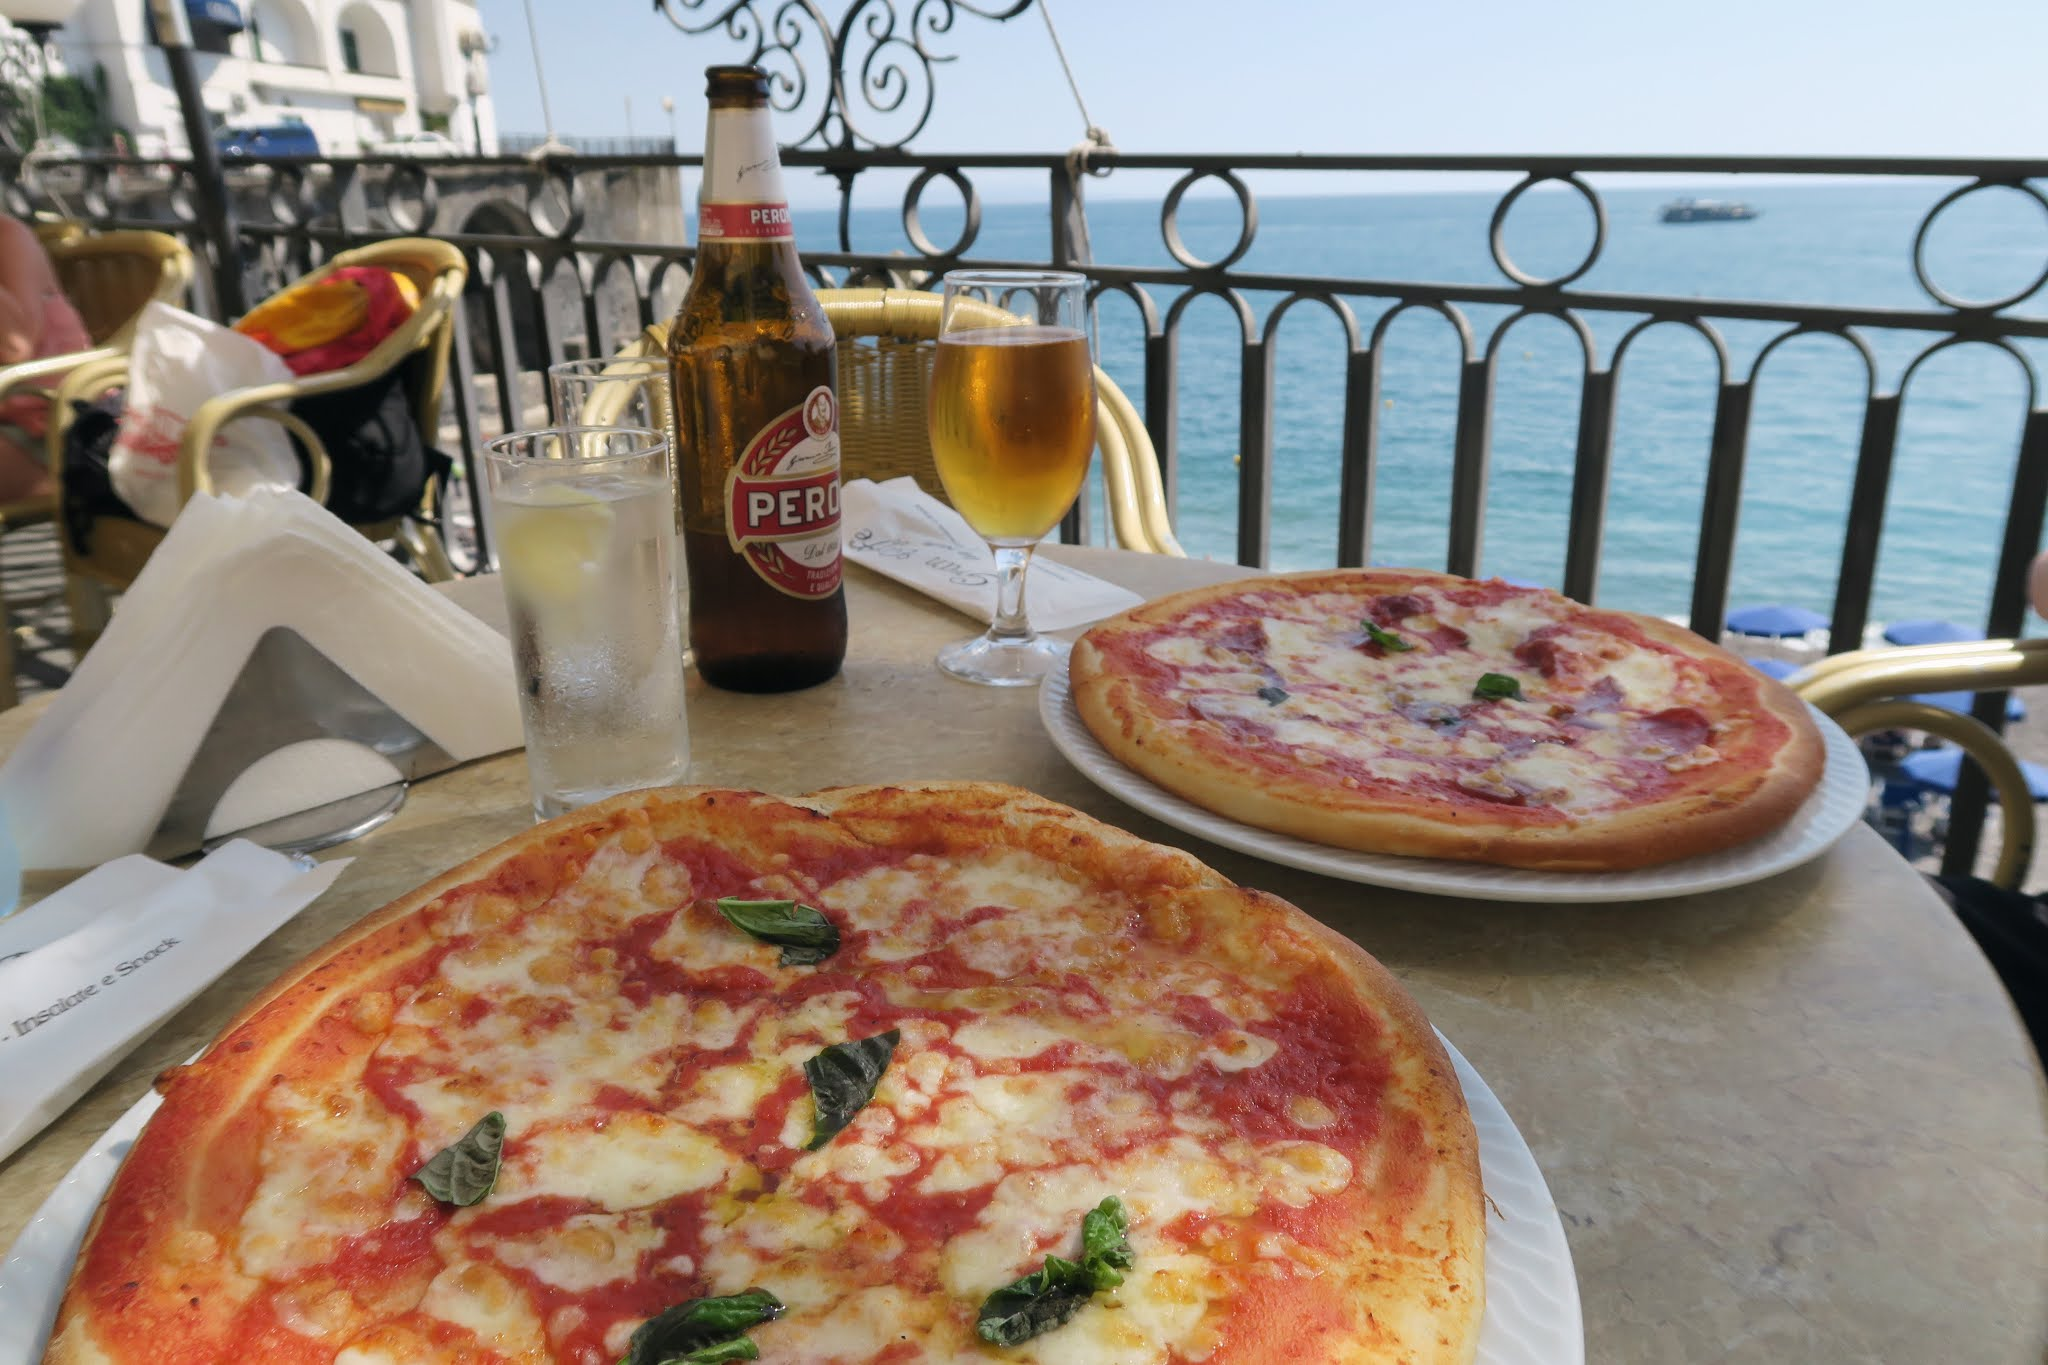 Pizza and beer on a table in front of the blue mediterranean sea.